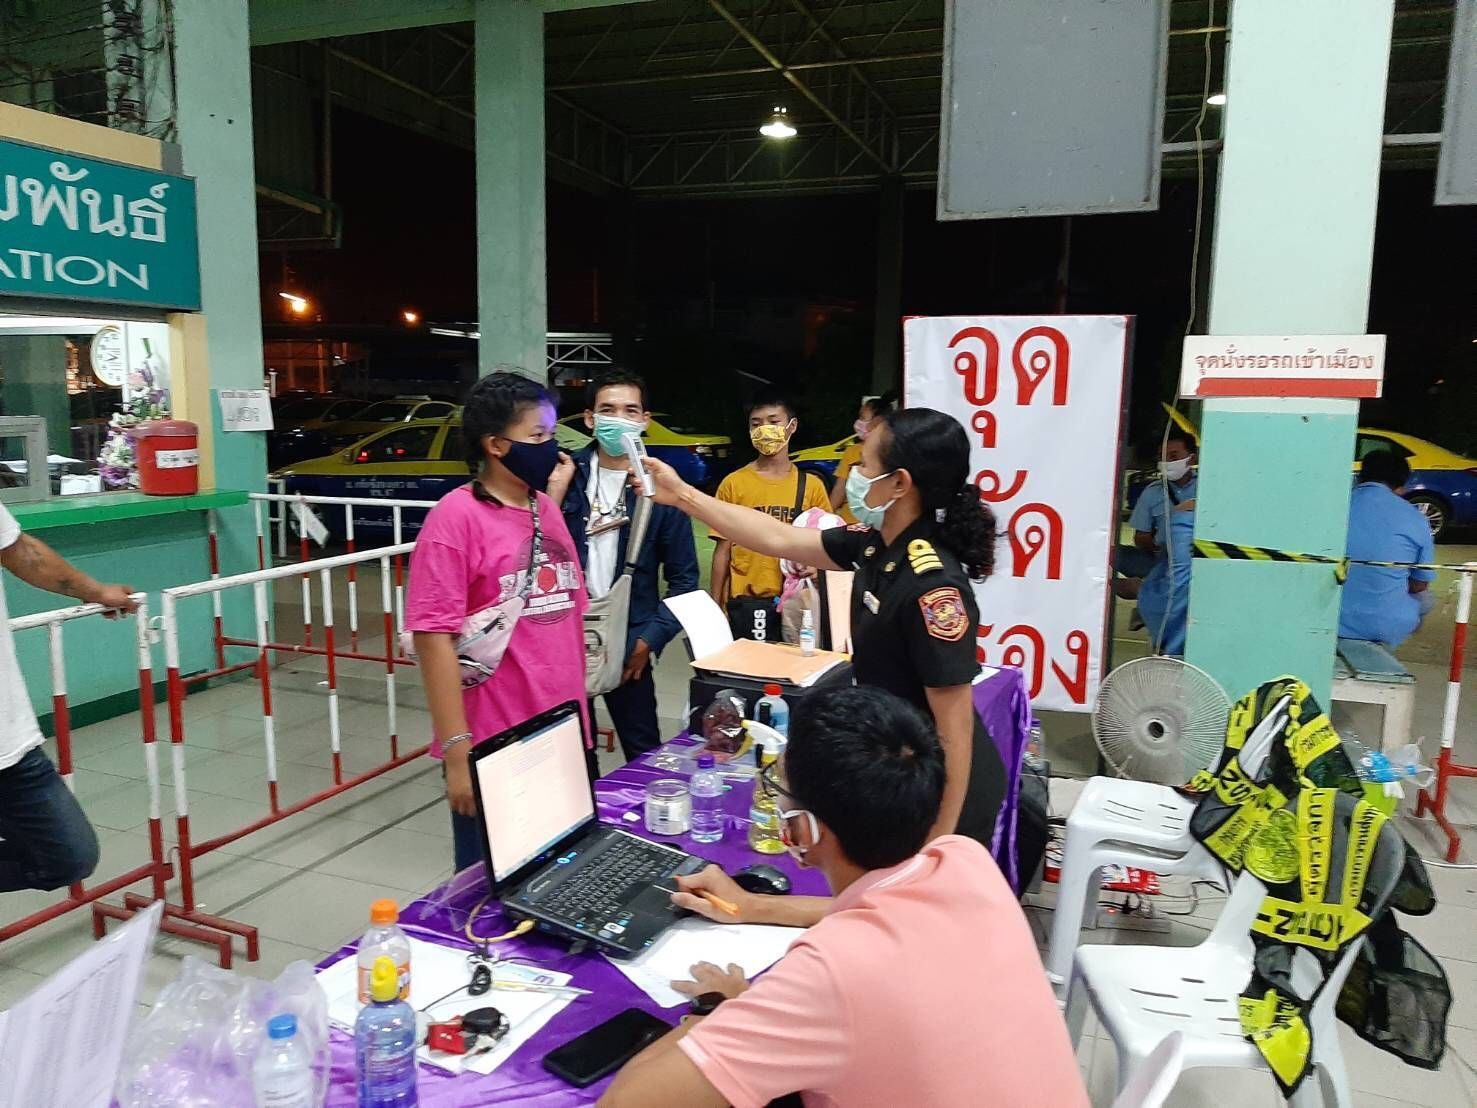 Thailand's COVID-19 cases rise to 1,651 with 127 new infections